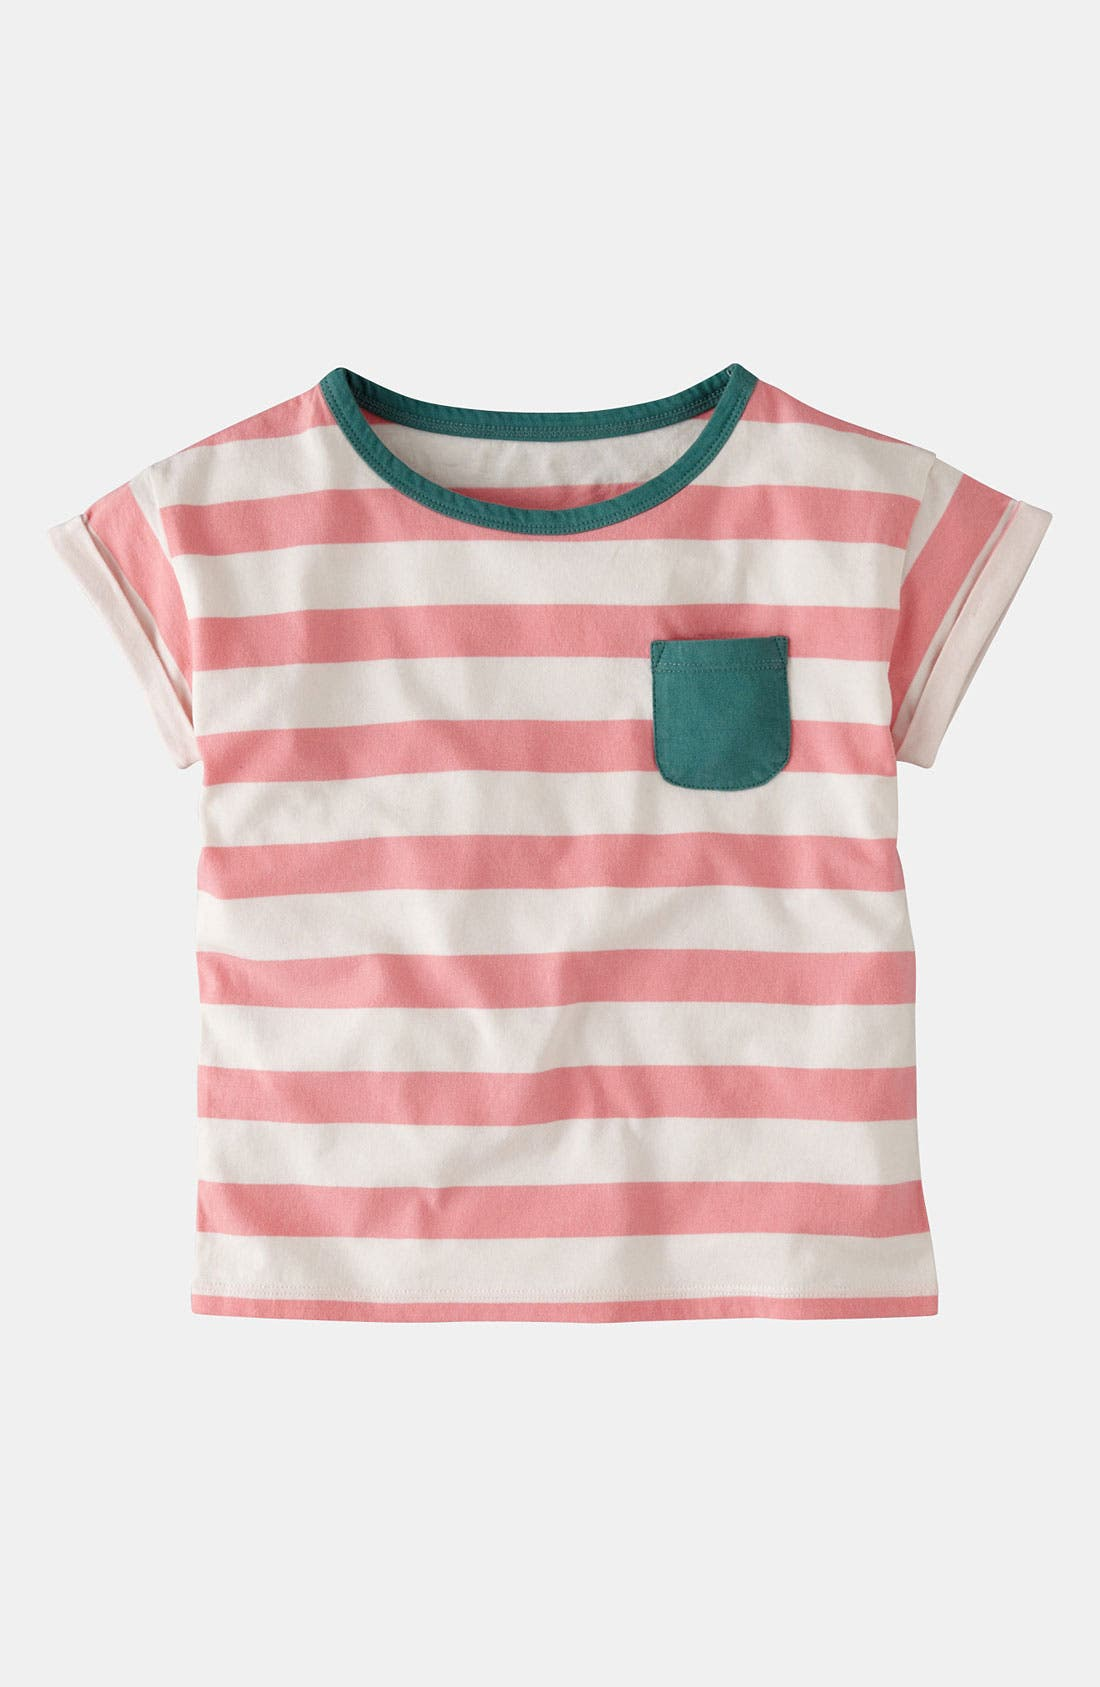 Main Image - Mini Boden 'Slouchy' Tee (Little Girls & Big Girls)